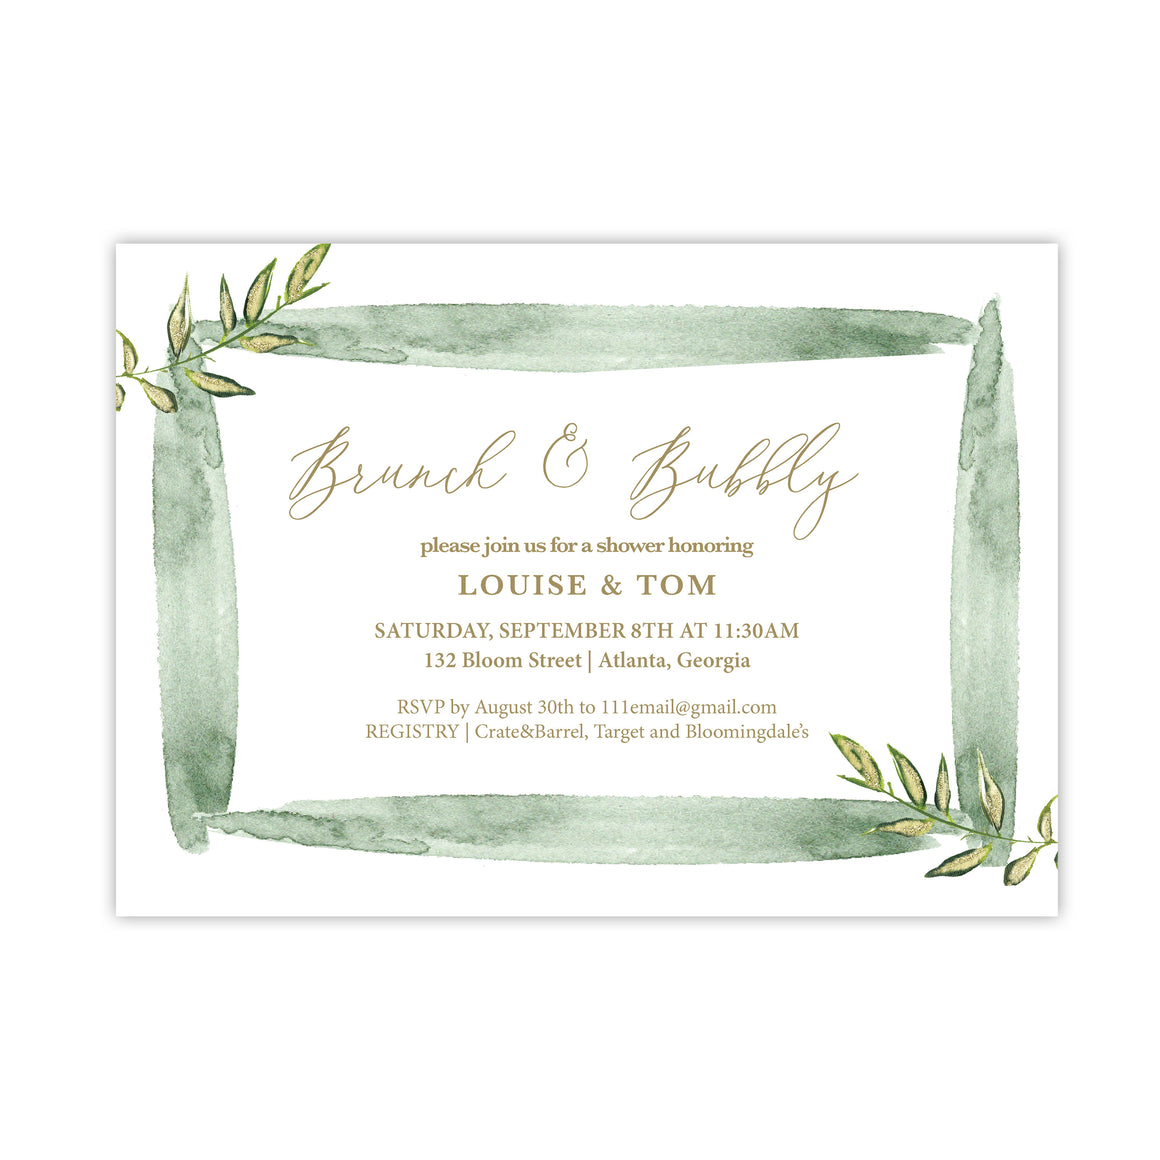 Watercolor Brush Invitation